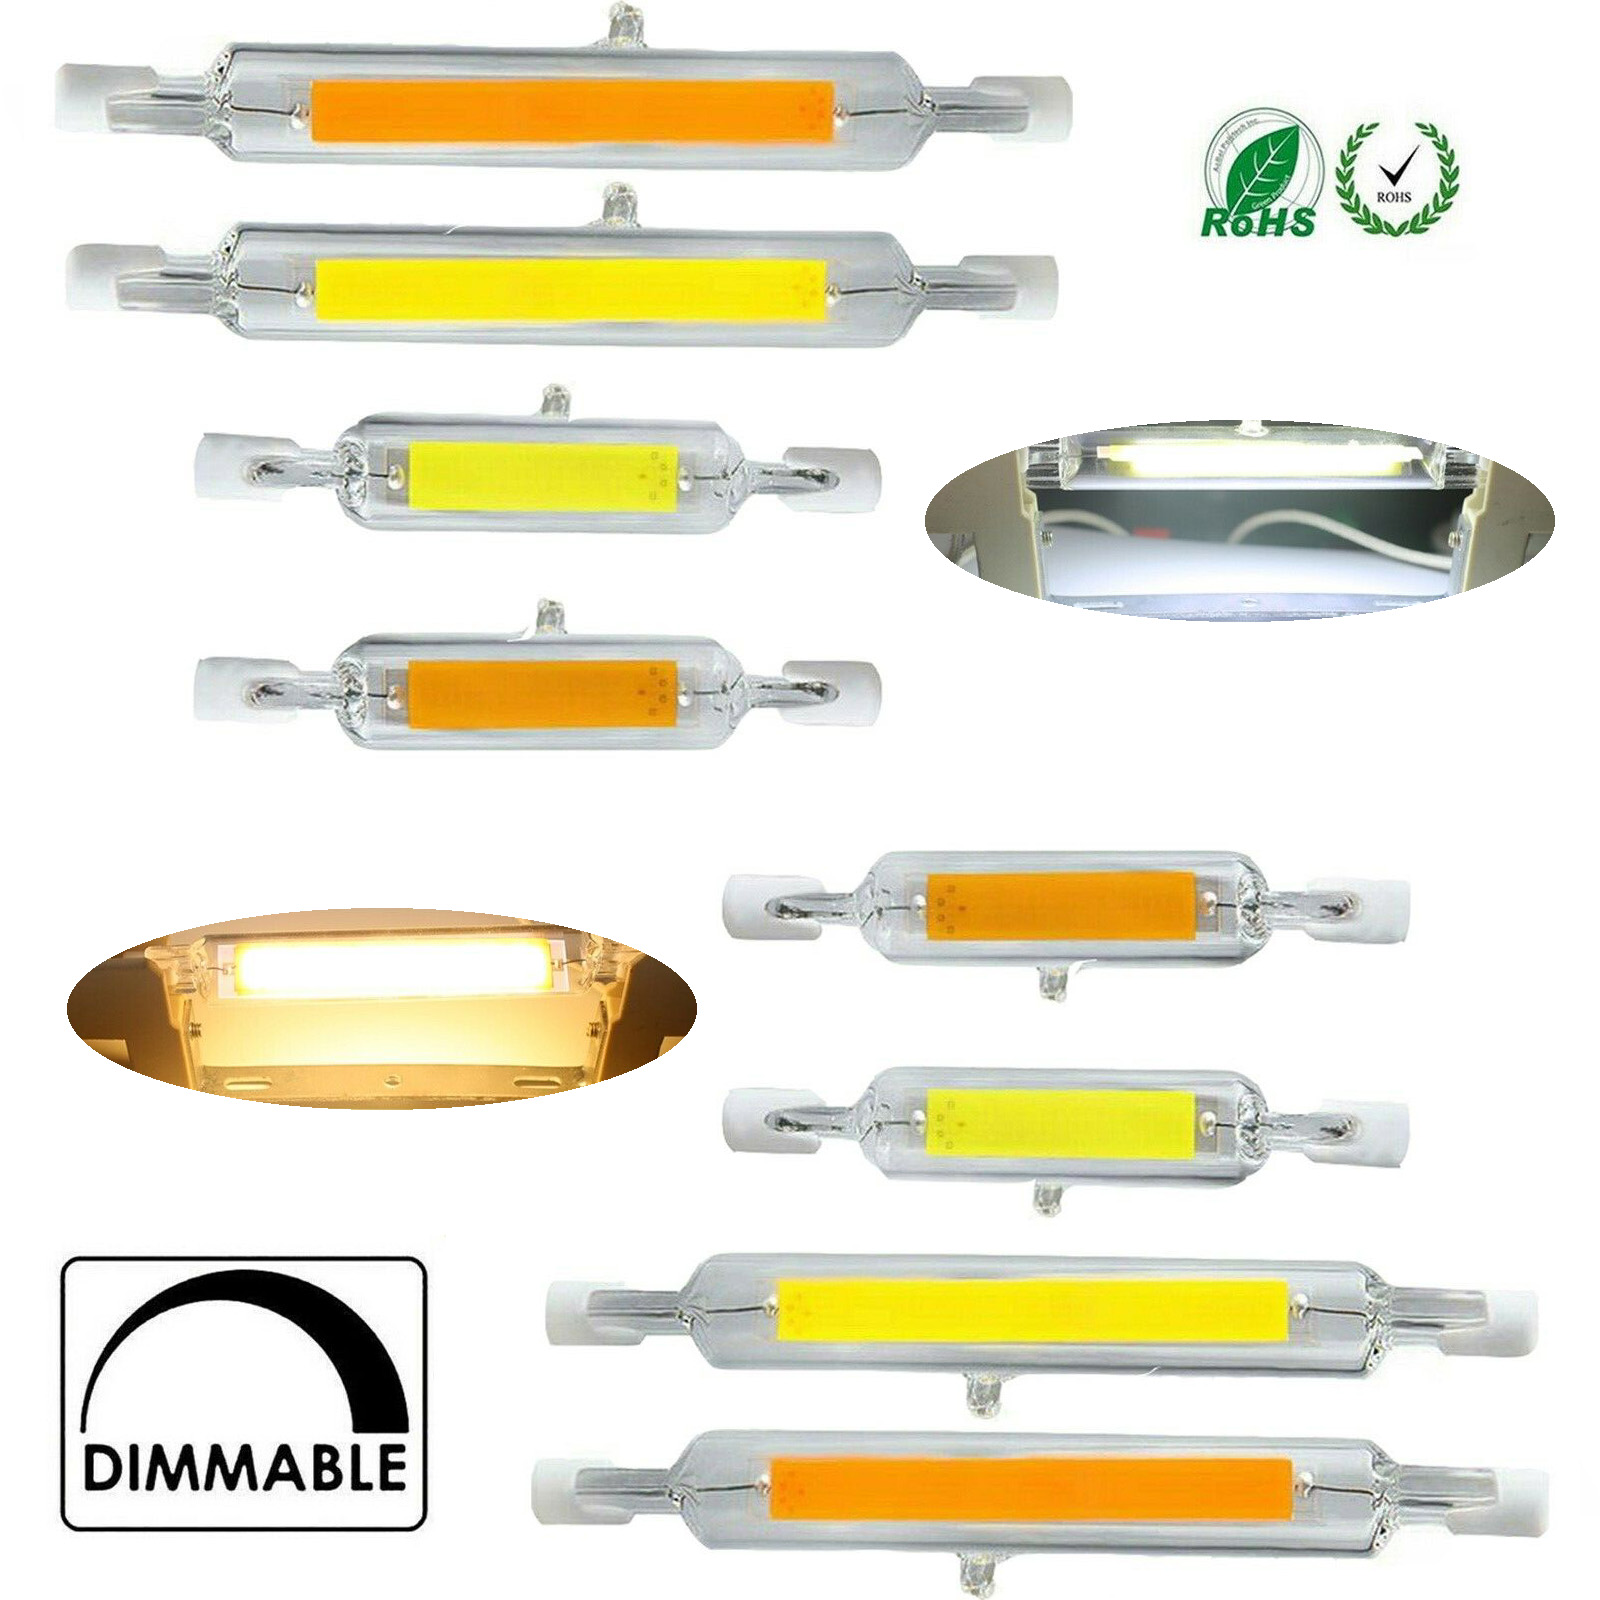 15x <font><b>R7s</b></font> <font><b>LED</b></font> Floodlight 78mm <font><b>118mm</b></font> 12W 15W 25W Dimmable COB Bulb Ceramic Glass Tube Light Ampoule Replacement Halogen <font><b>Bombillas</b></font> image